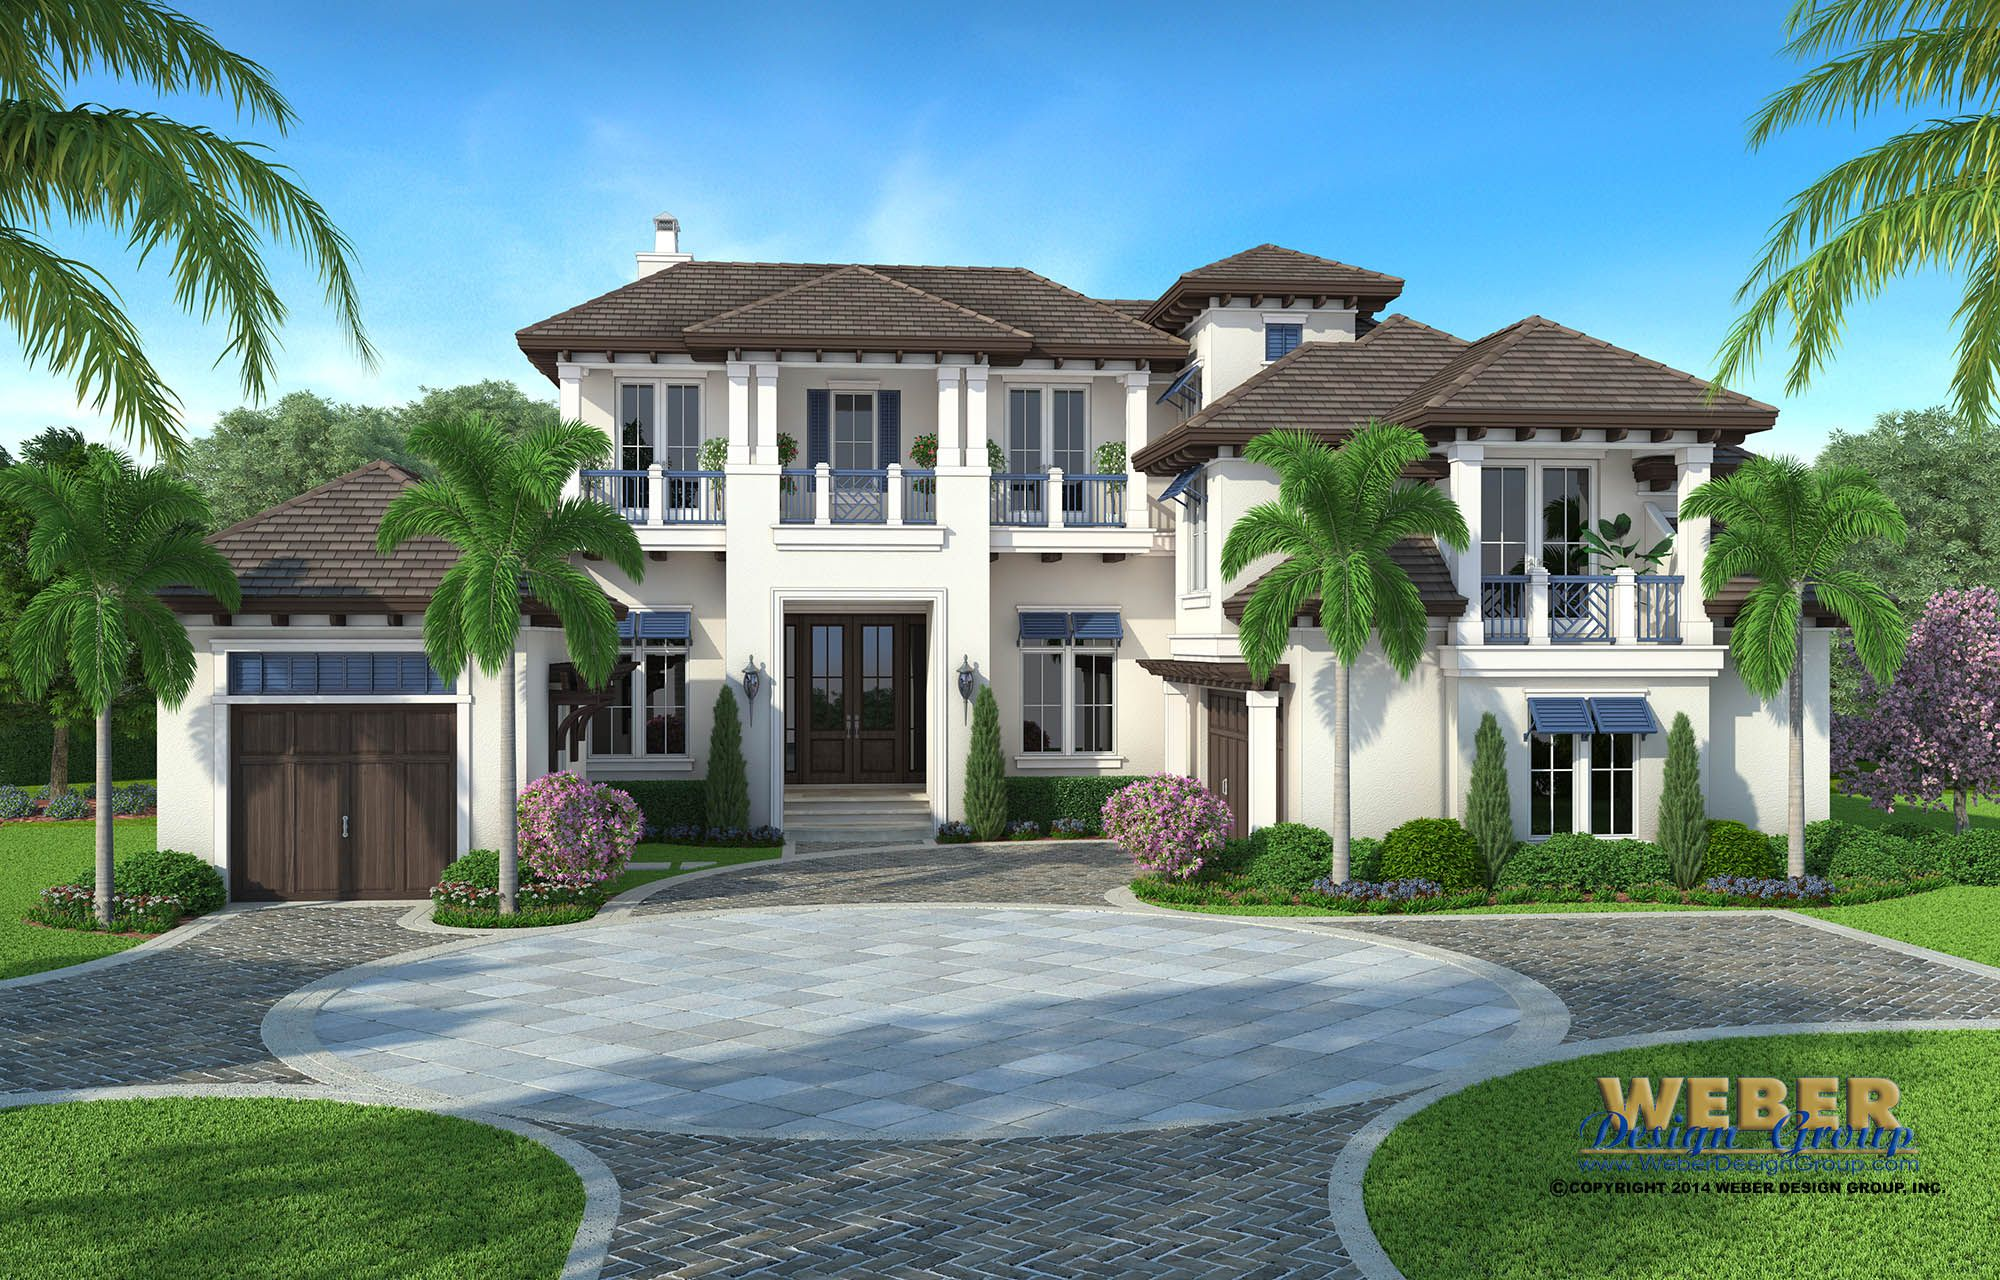 House Plans Stock Home Floor Plans Weber Design Group Florida House Plans Mediterranean House Plans Beach Style House Plans